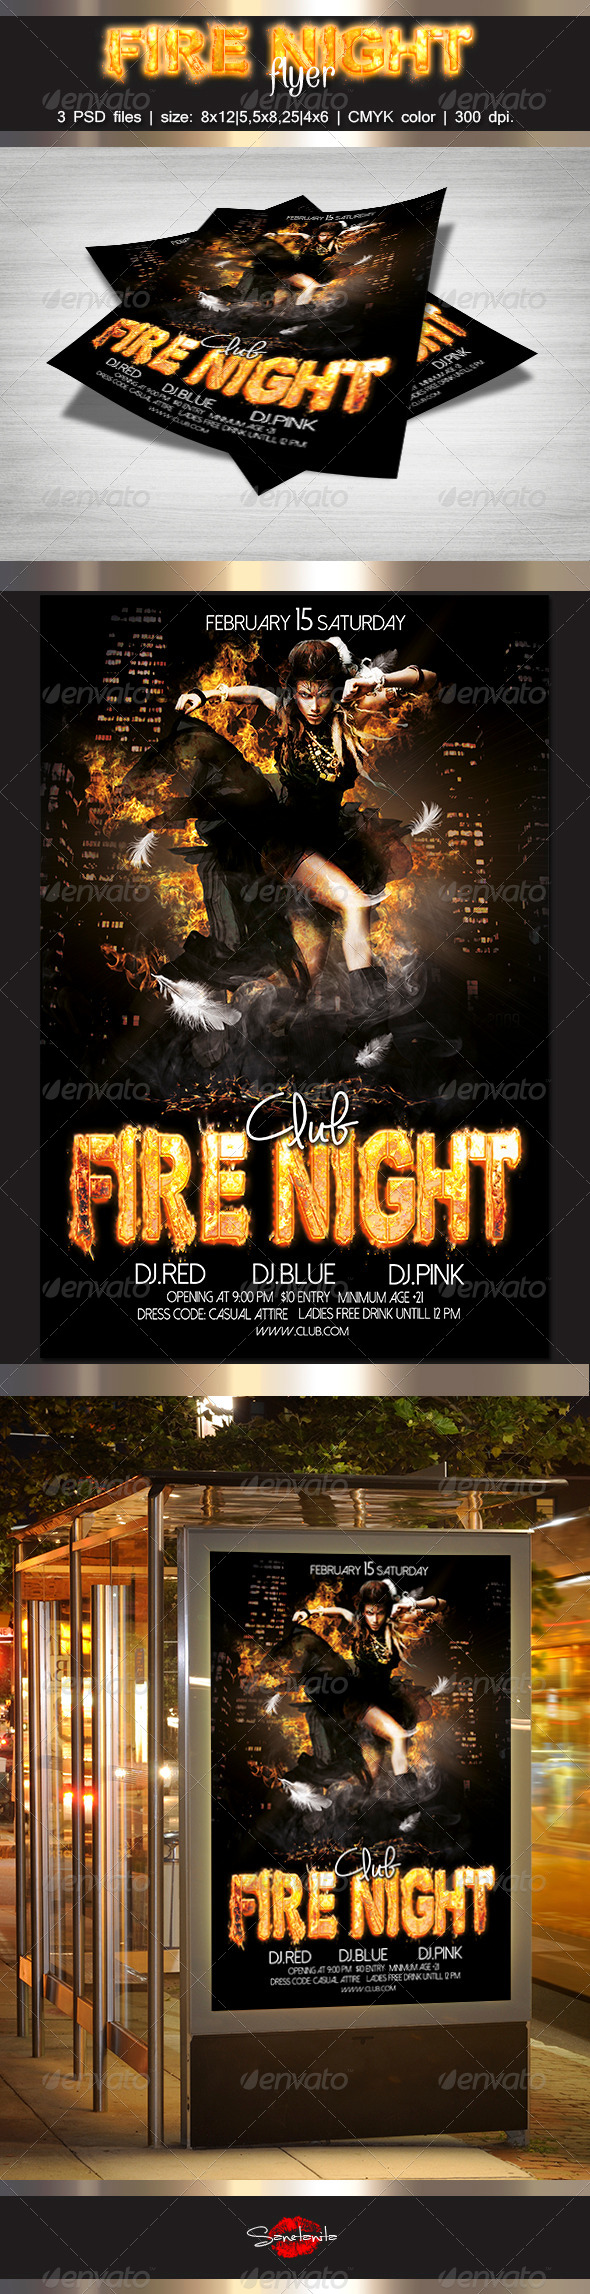 Fire Night Flyer Template - Clubs & Parties Events